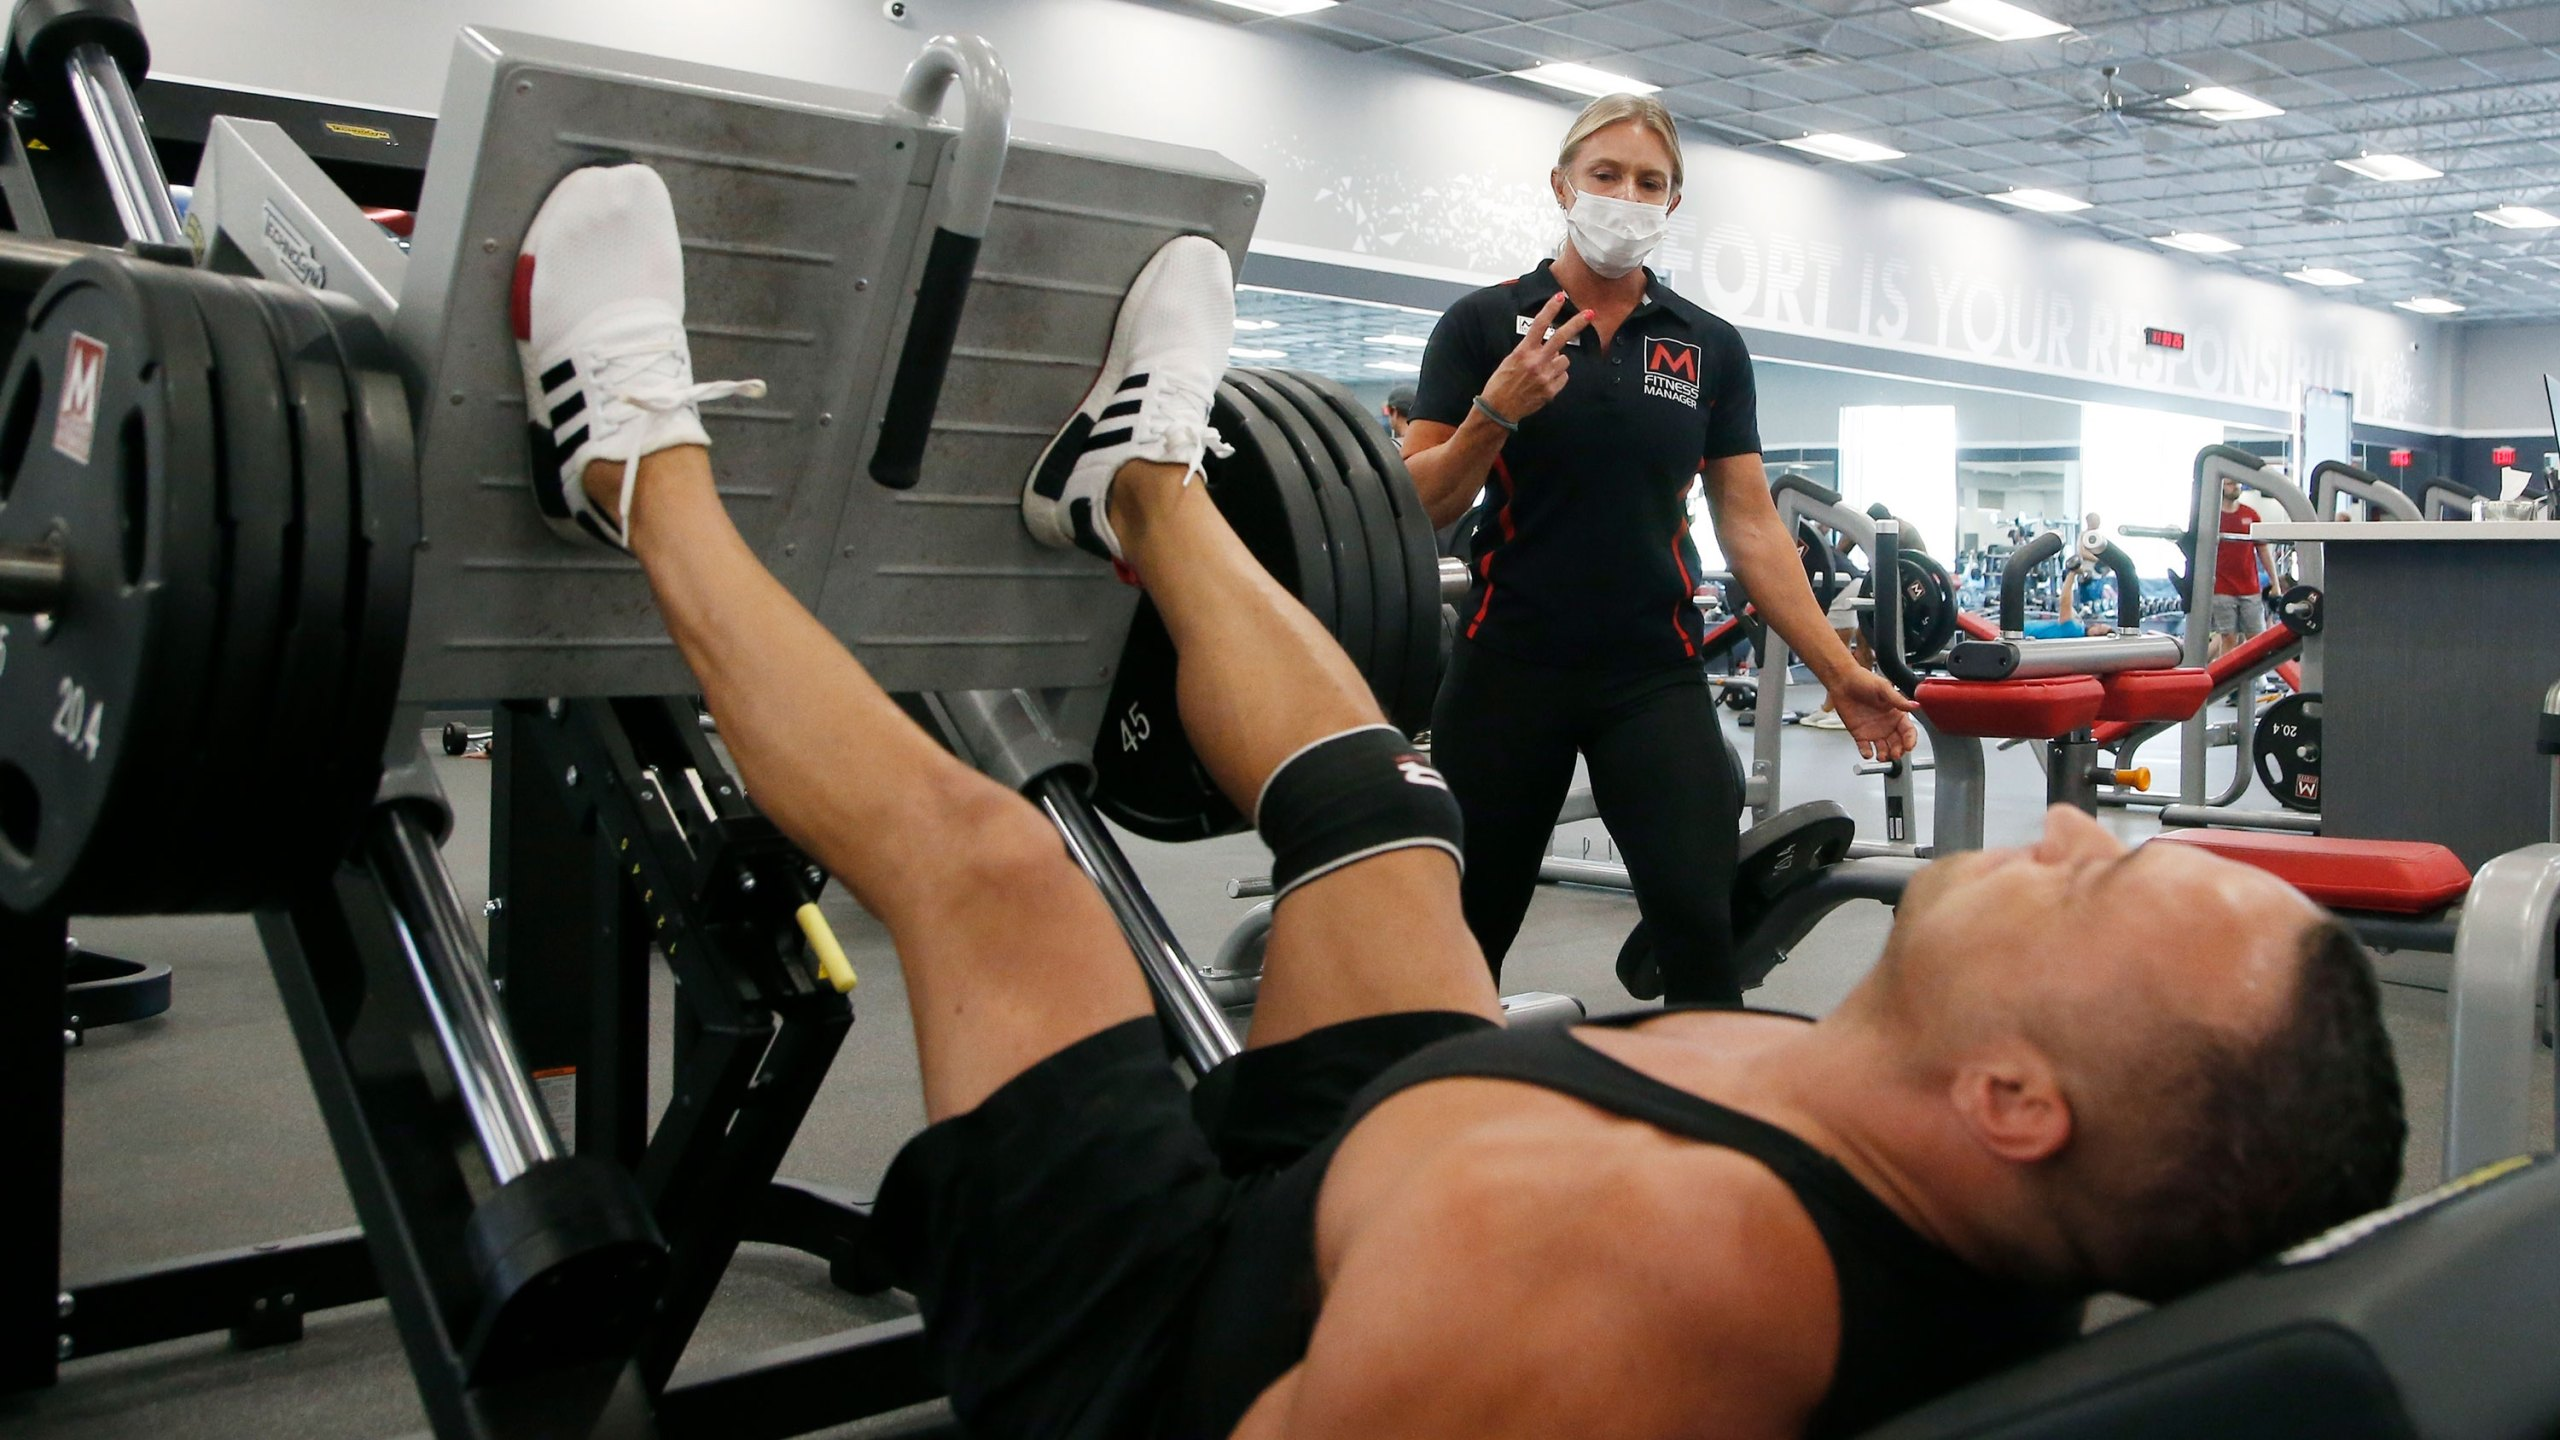 A trainer, top, at Mountainside Fitness, works with a client as the facility remains open even as Arizona Gov. Doug Ducey has issued an executive order for all gyms to close due to the surge in coronavirus cases in Arizona Thursday, July 2, 2020, in Phoenix. For the third straight day, several health clubs in metro Phoenix were defying Ducey's 30-day shutdown order to close gyms, bars, water park and tubing businesses, raising questions about whether officials who have been criticized for responding indecisively to the pandemic will be effective in shutting down the clubs. (AP Photo/Ross D. Franklin)